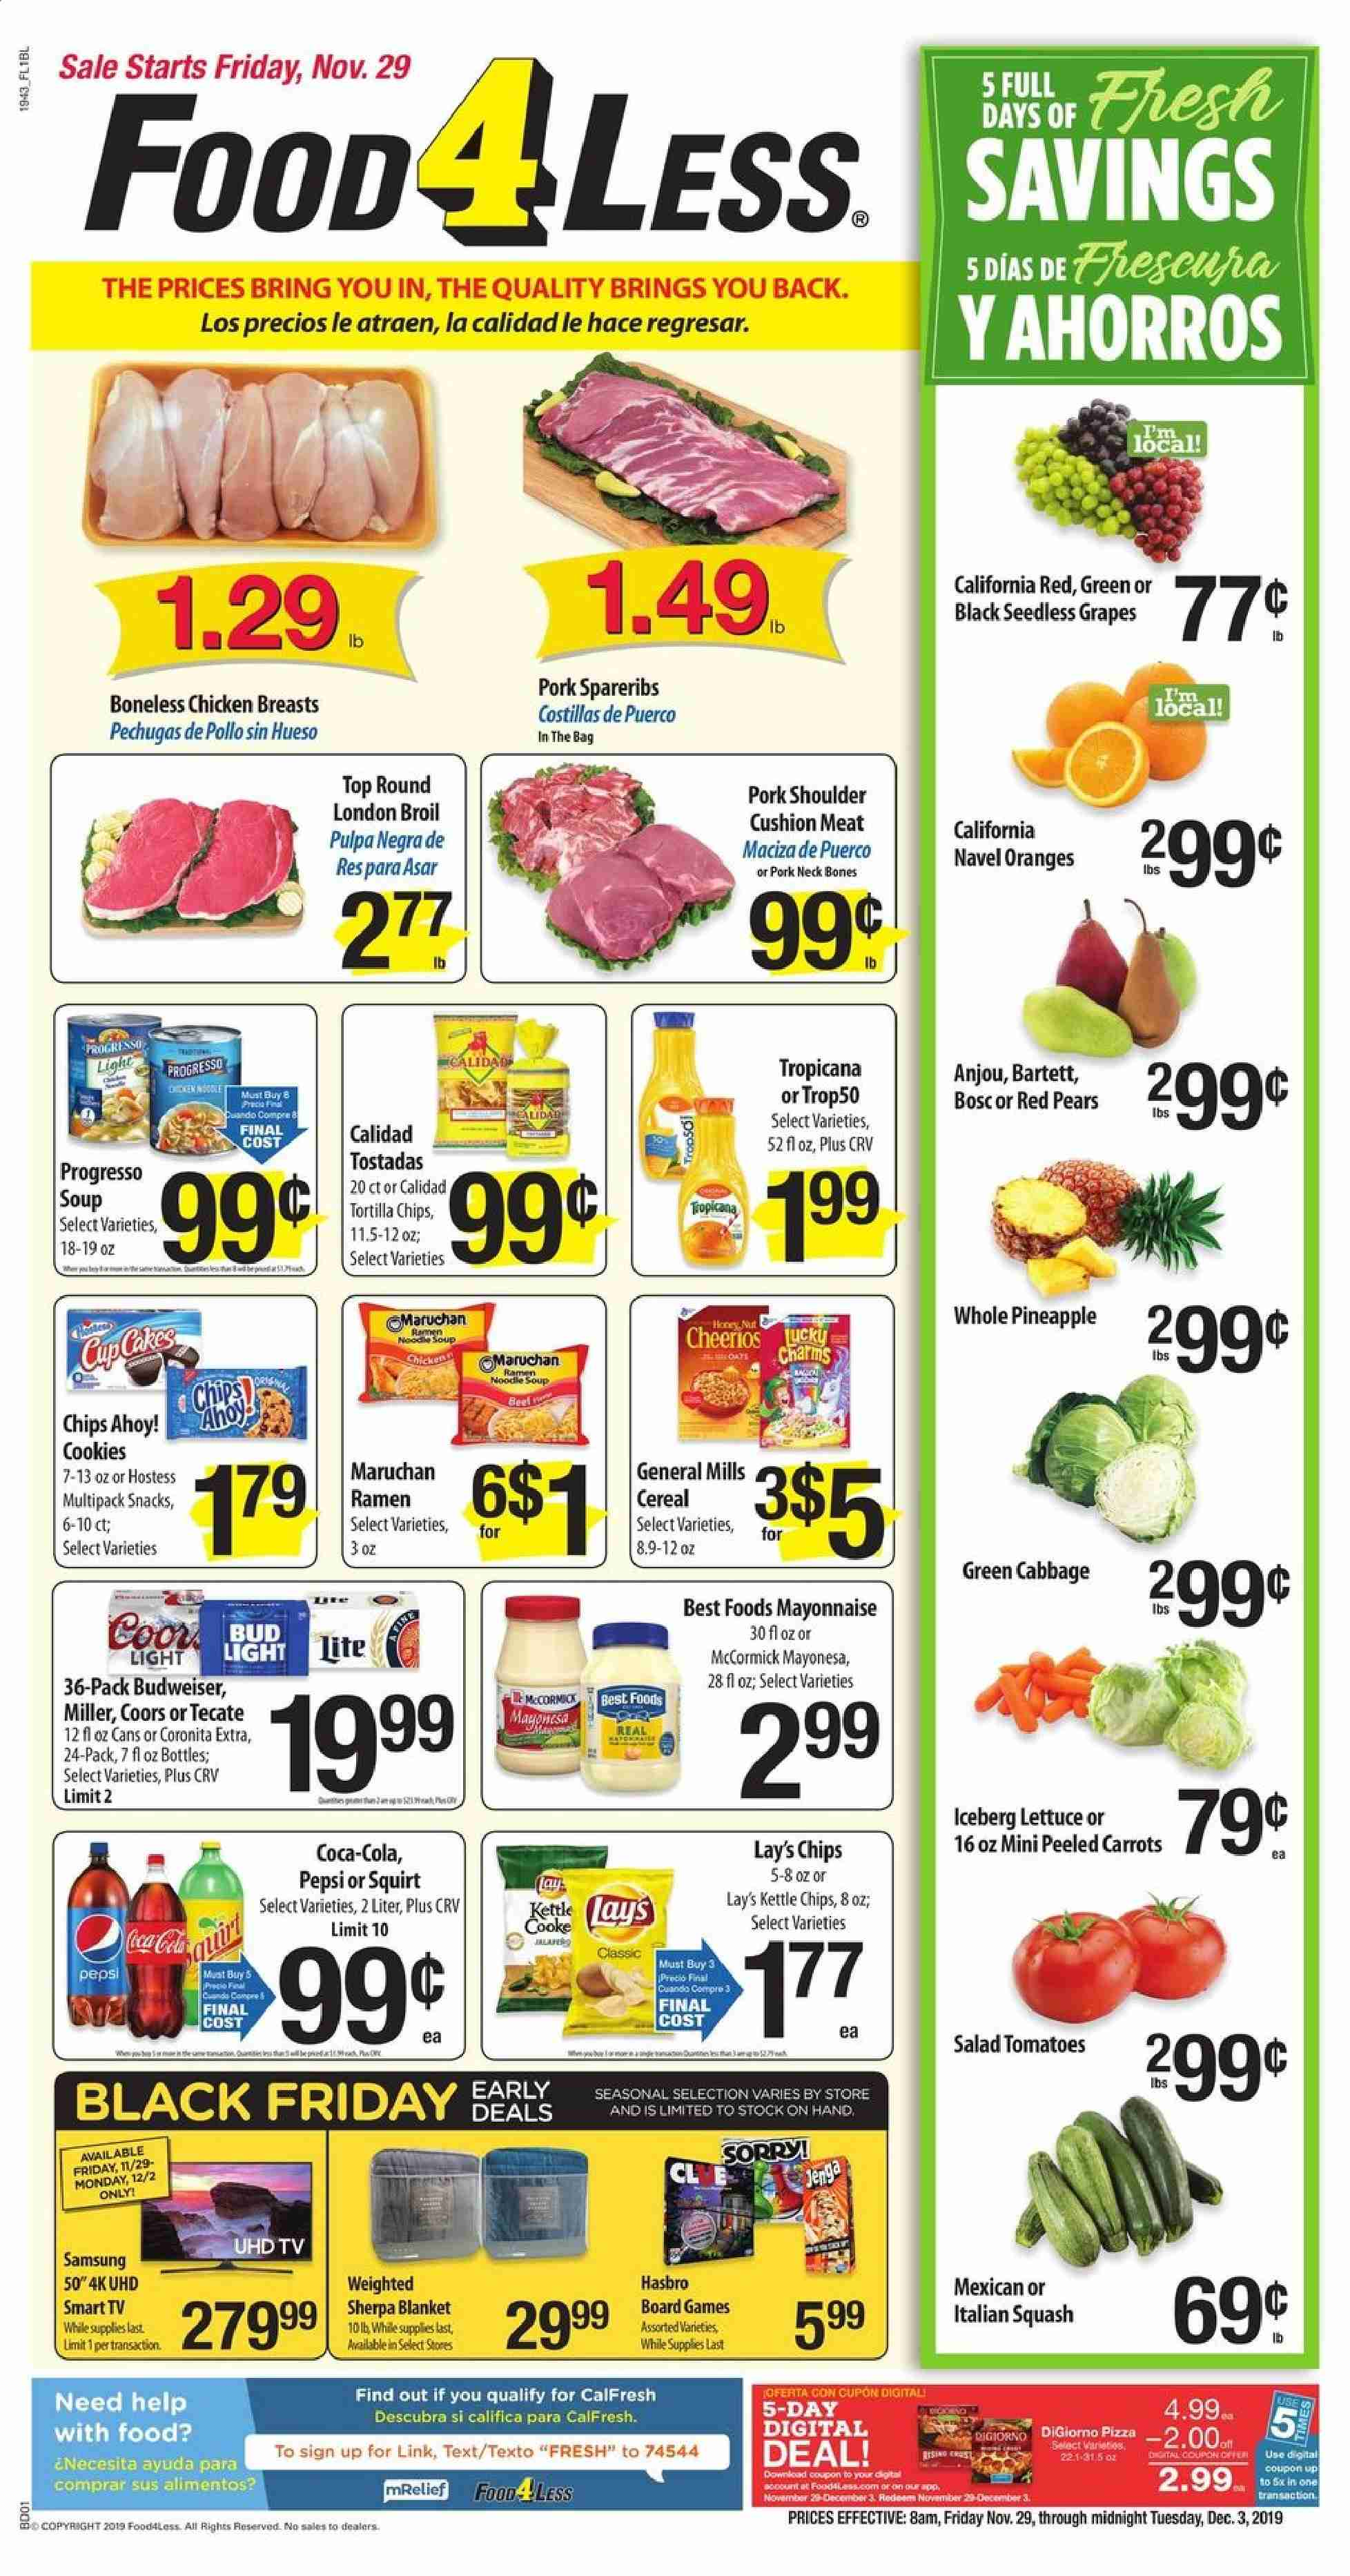 Food 4 Less Flyer  - 11.29.2019 - 12.03.2019. Page 1.